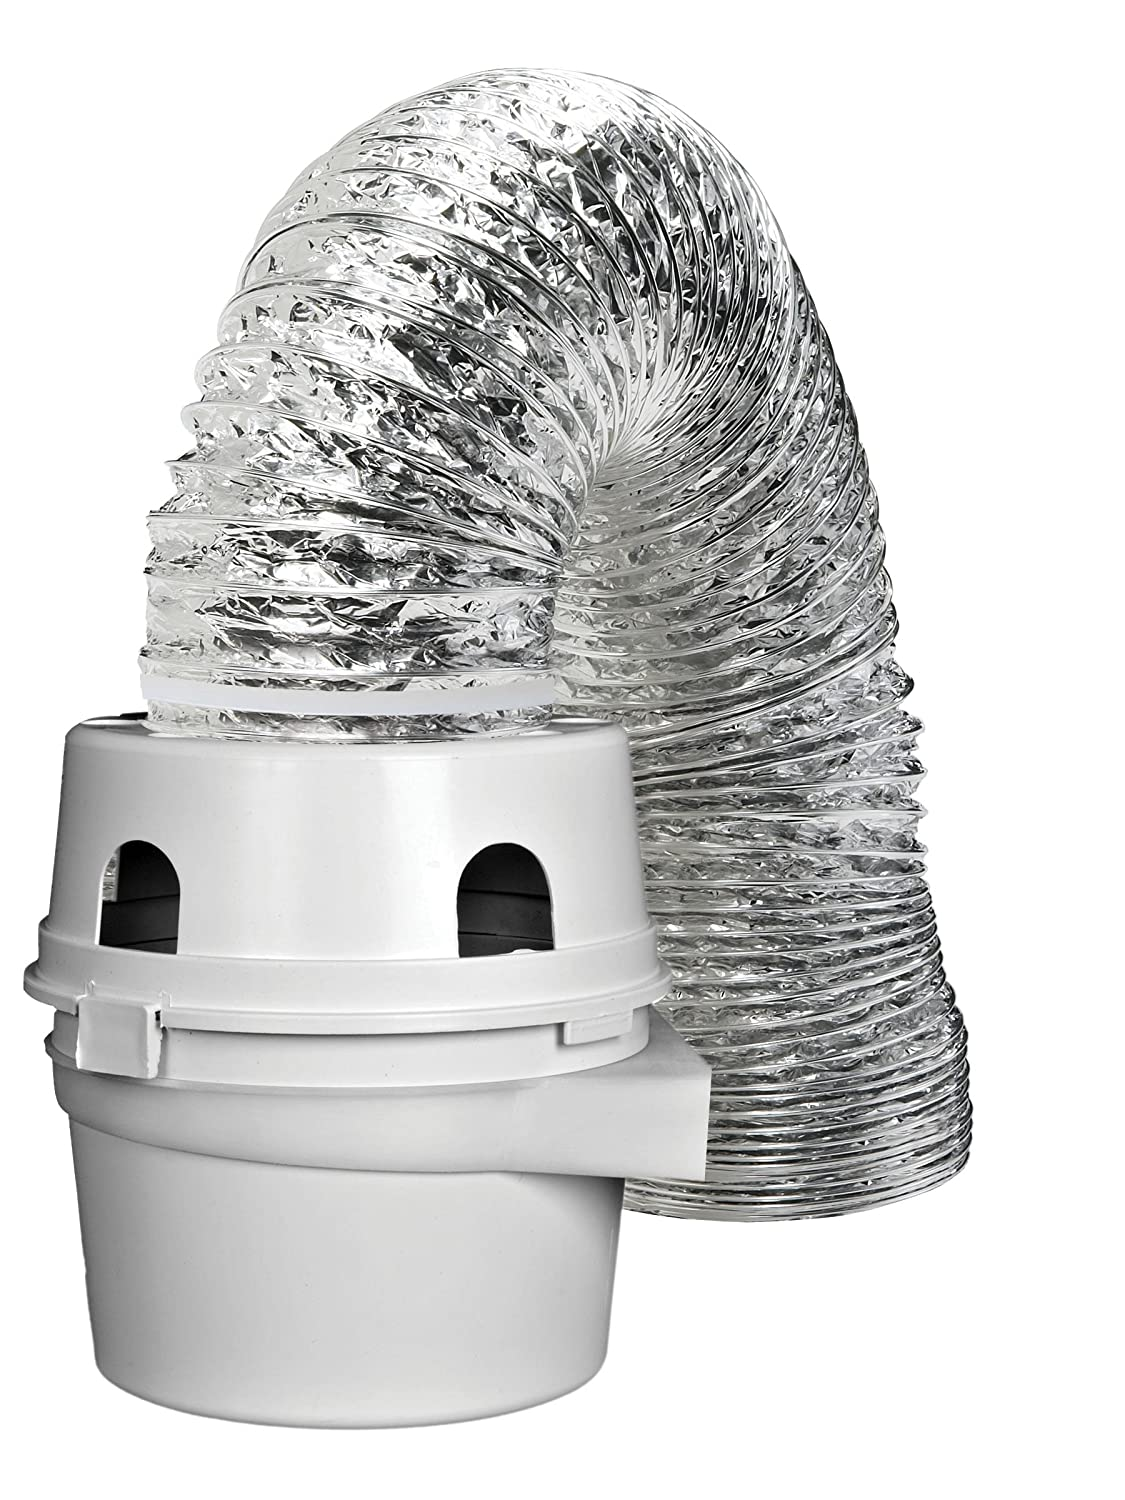 Dundas Jafine TDIDVKZW Indoor Dryer Vent Kit with 4-Inch by 5-Foot Proflex Duct, 4 Inch White